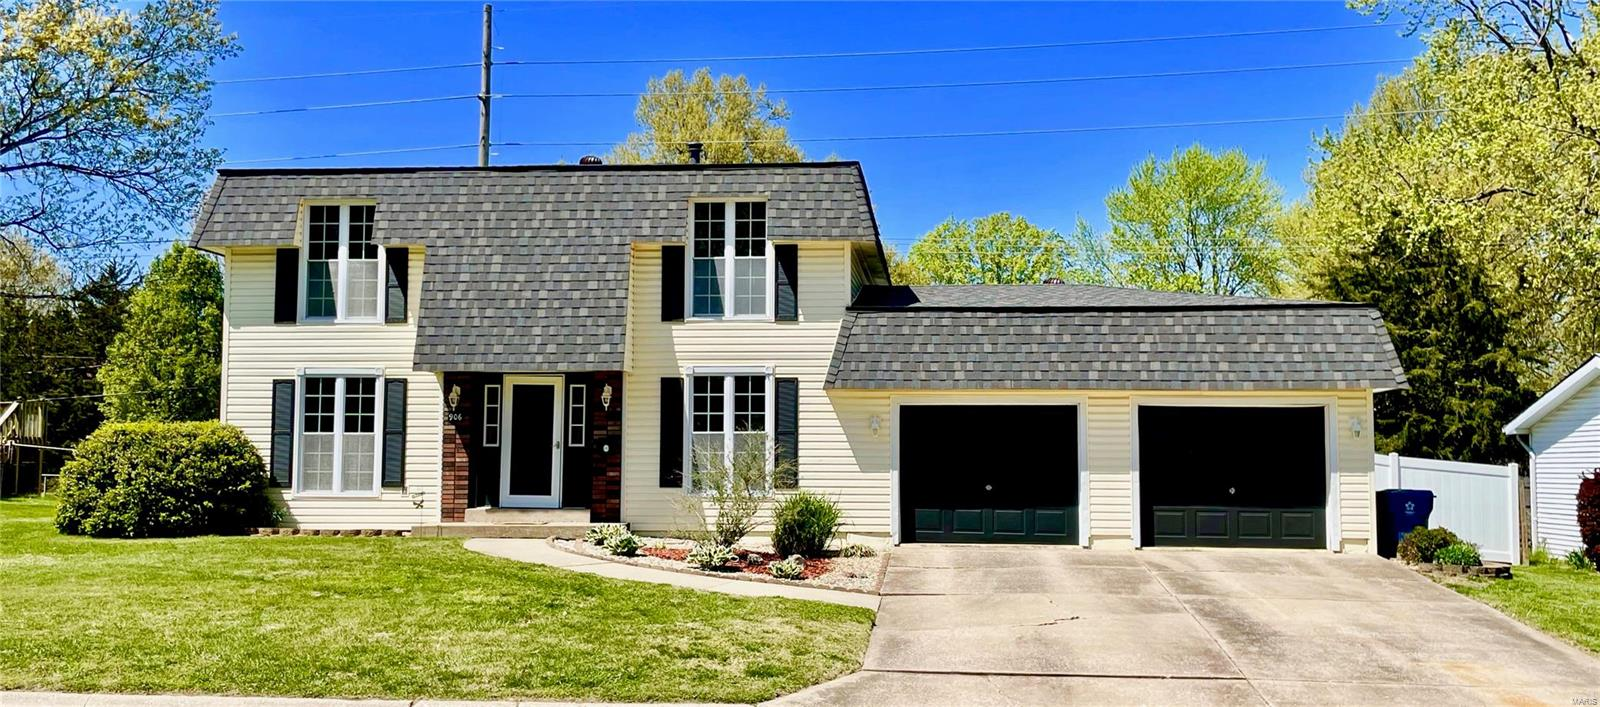 Aljets & Kutters 9th Add Real Estate Listings Main Image